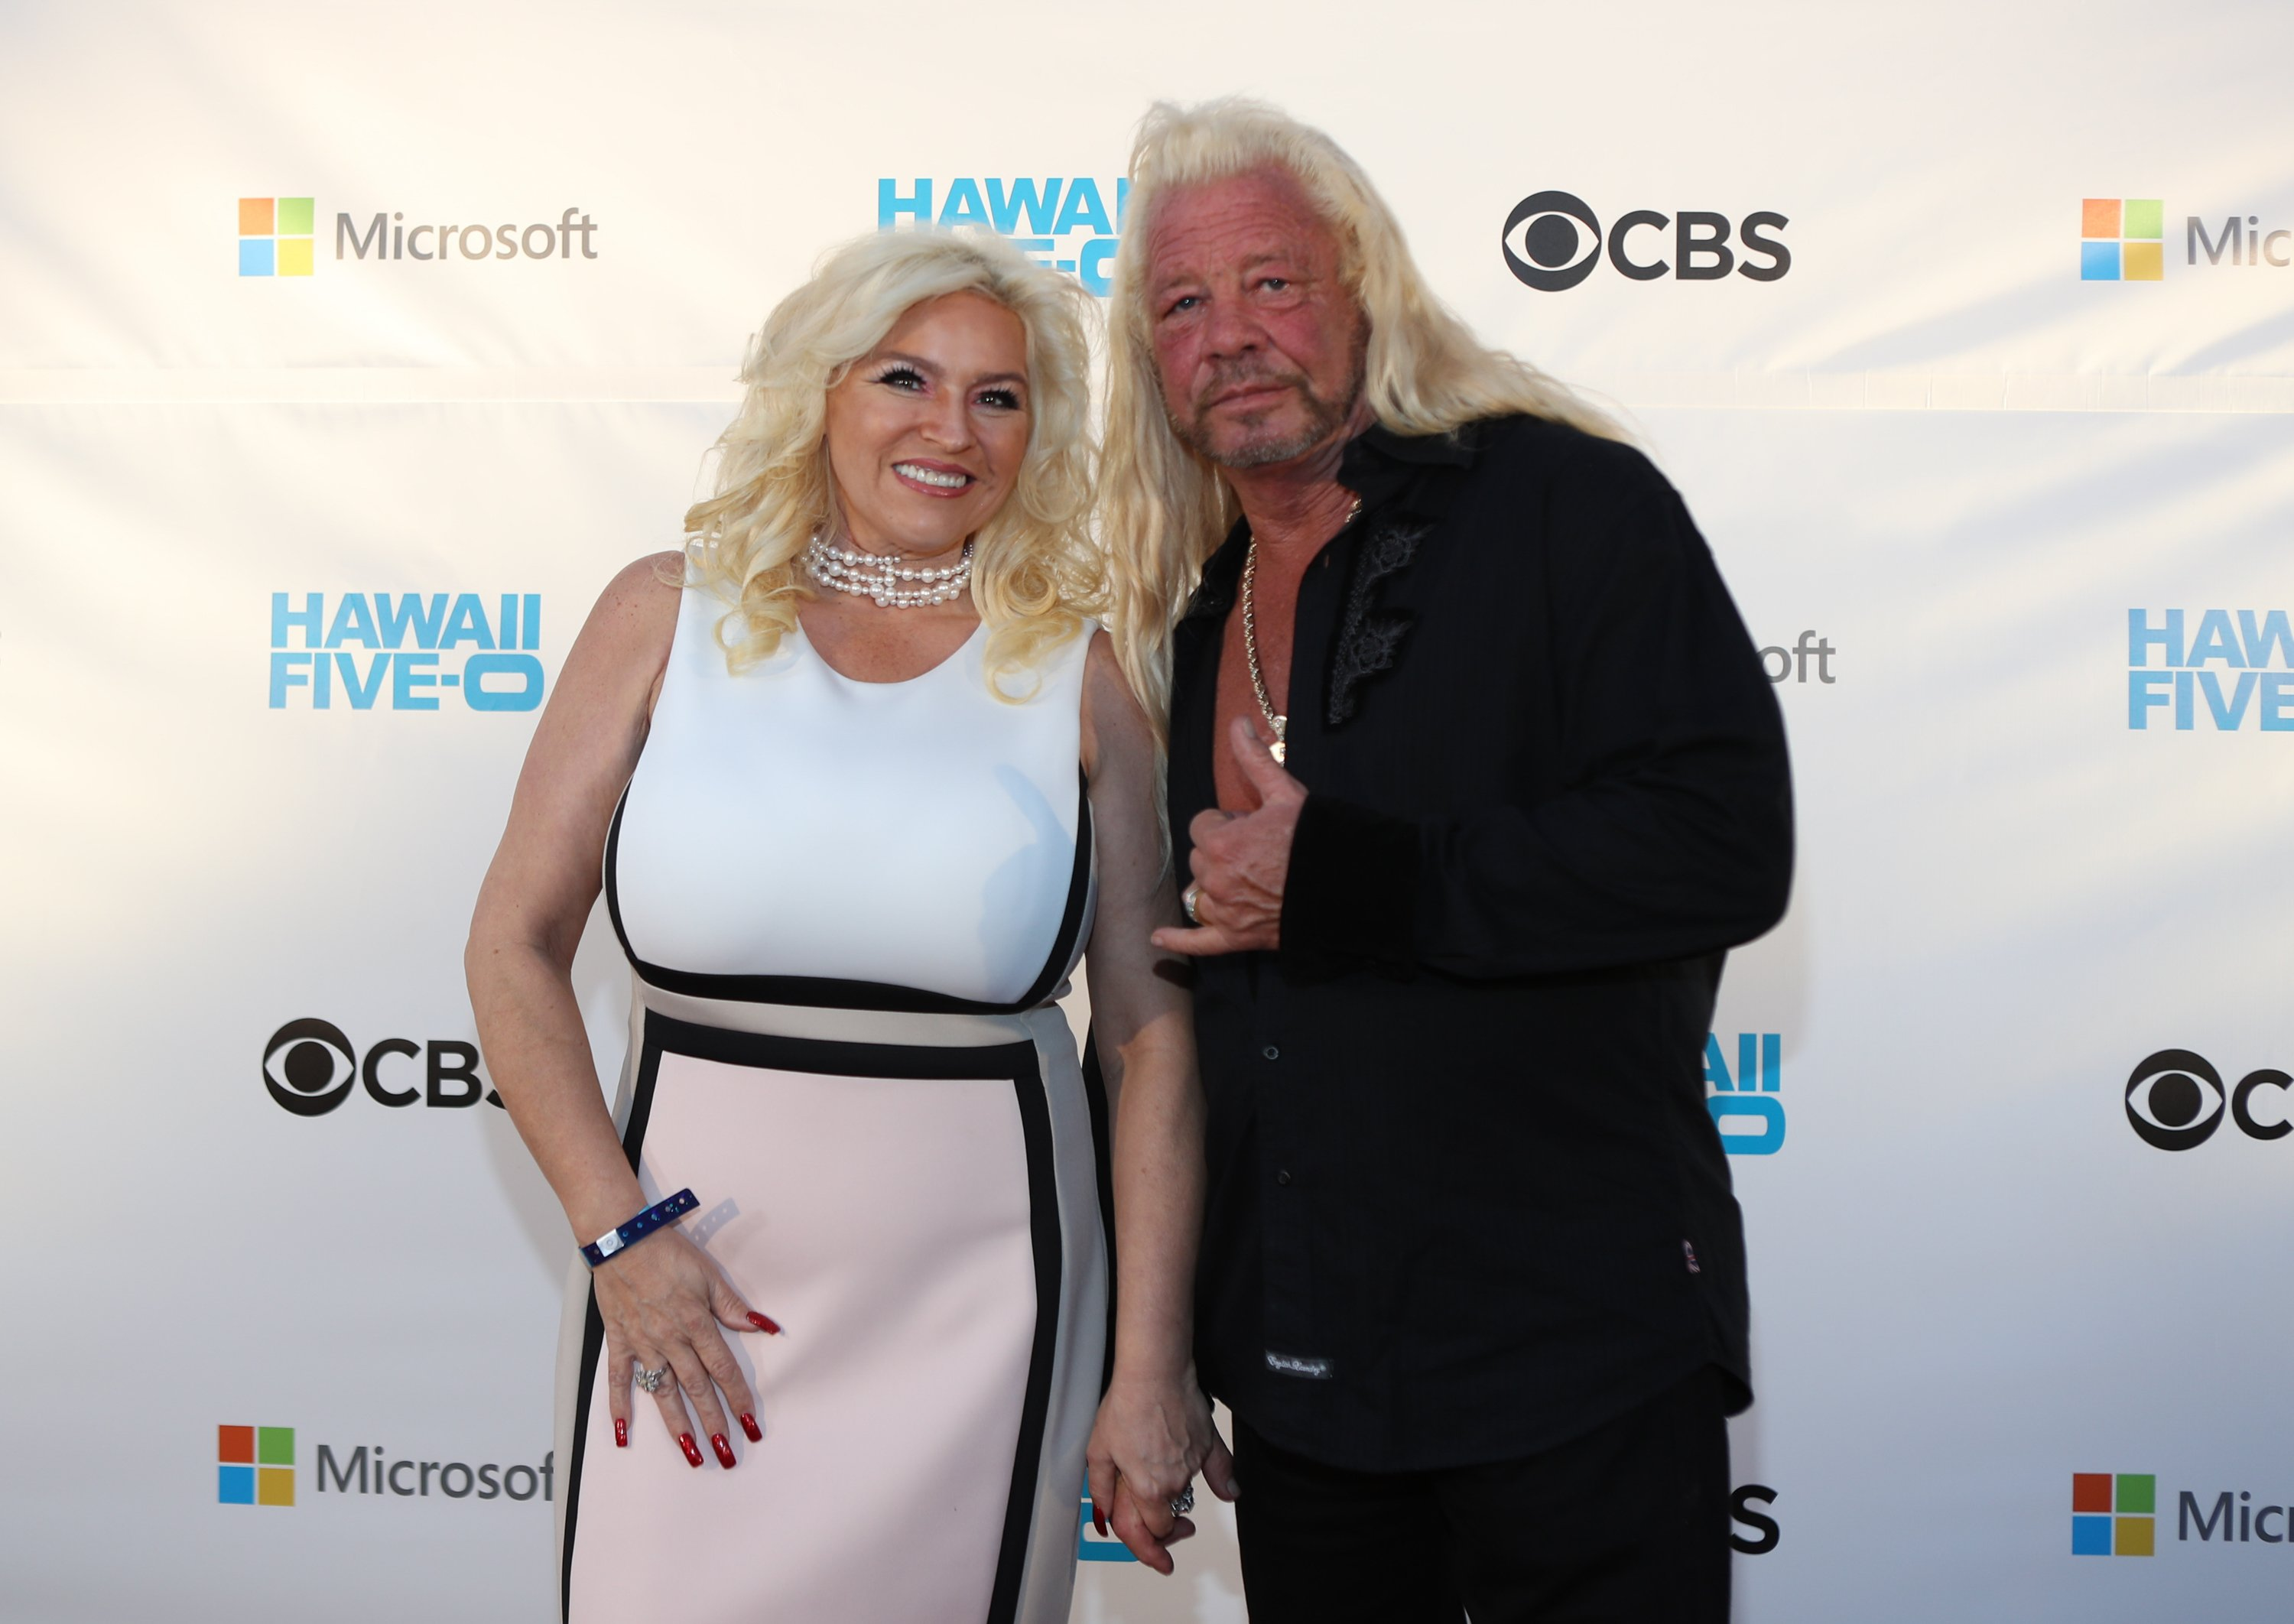 """Duane and Beth Chapman attend the Sunset on the Beach event for """"Hawaii Five-0"""" in Waikiki, Hawaii on November 10, 2017 